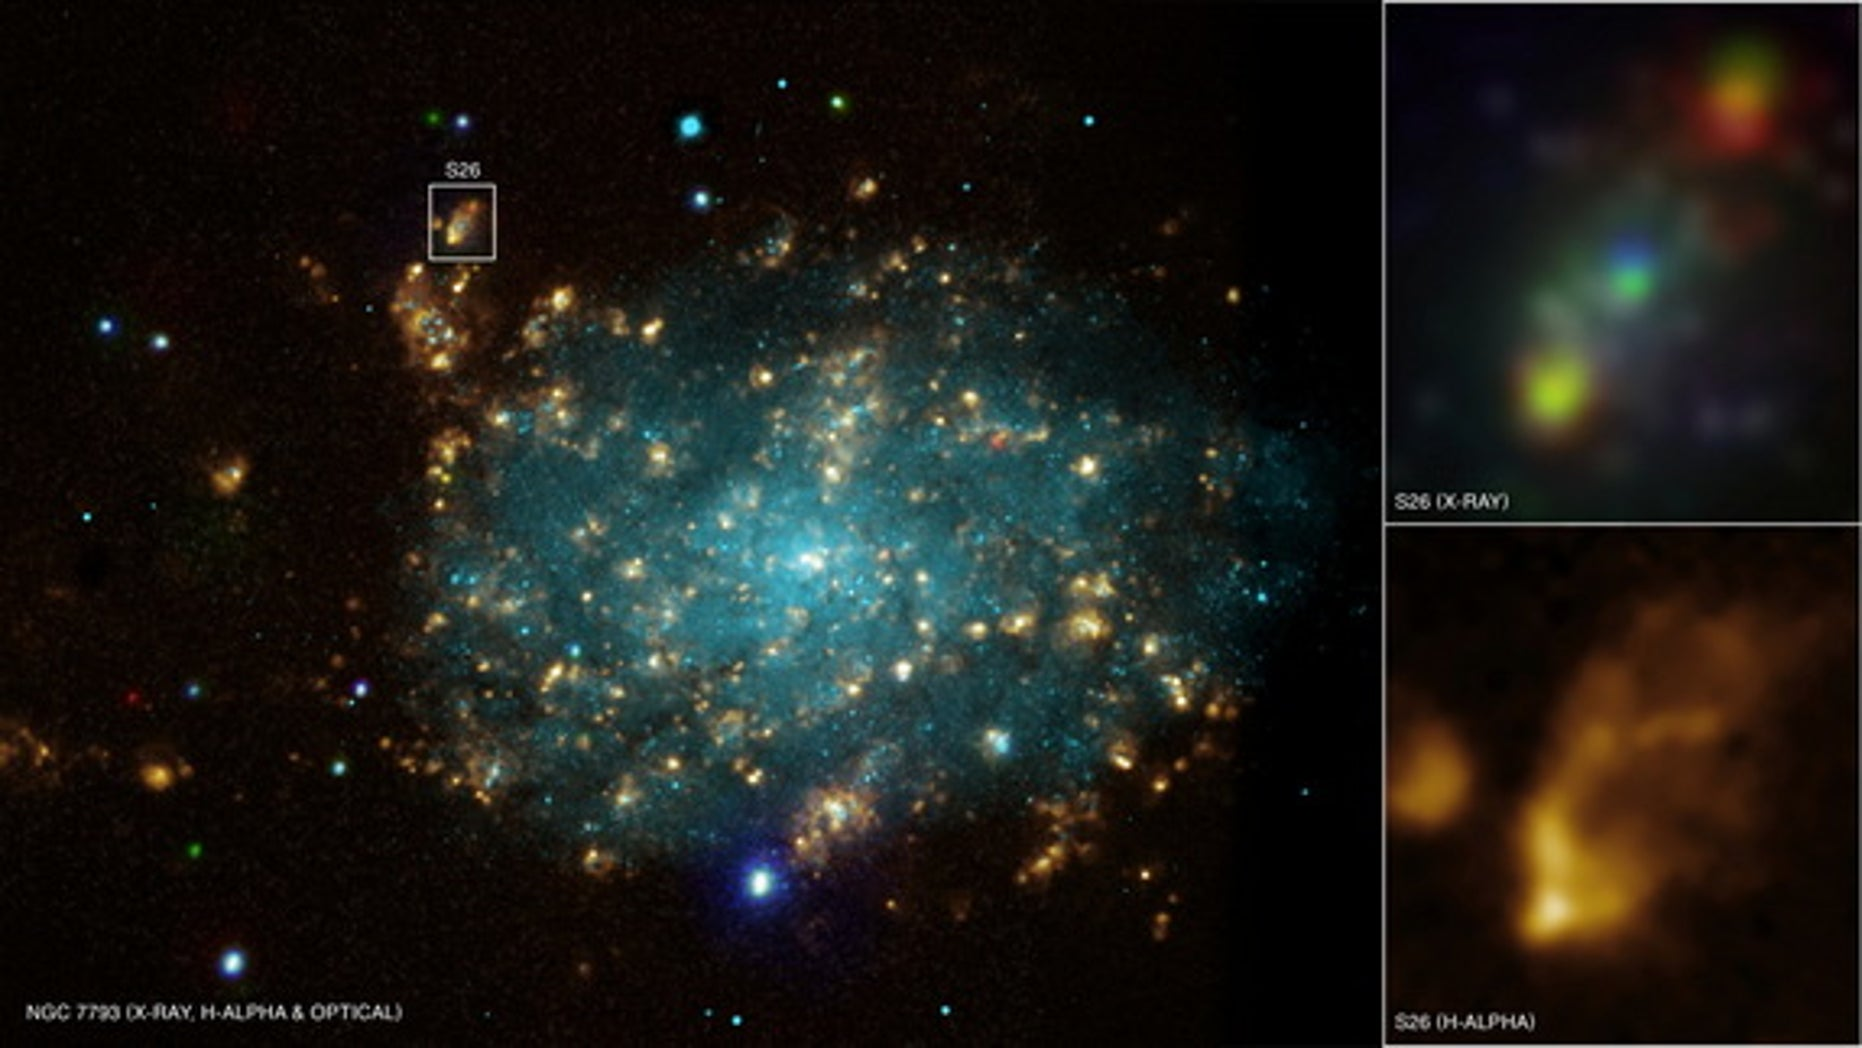 This image shows the galaxy NGC 7793 about 12 million light-years from Earth. The galaxy is home to the voracious black hole P13, which is easily seen as the brightest blue source near the bottom of the image.